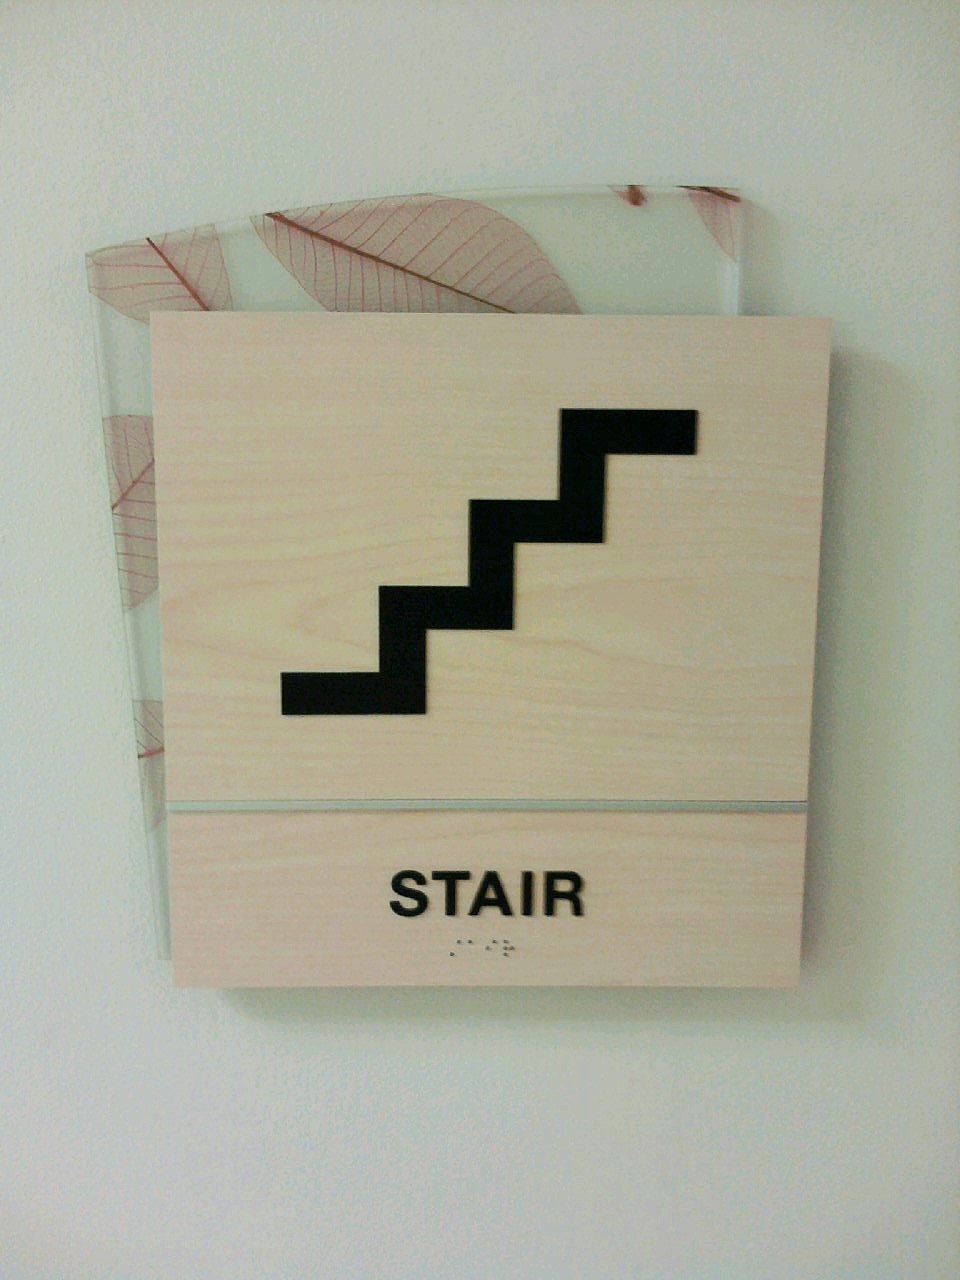 Stairs signs